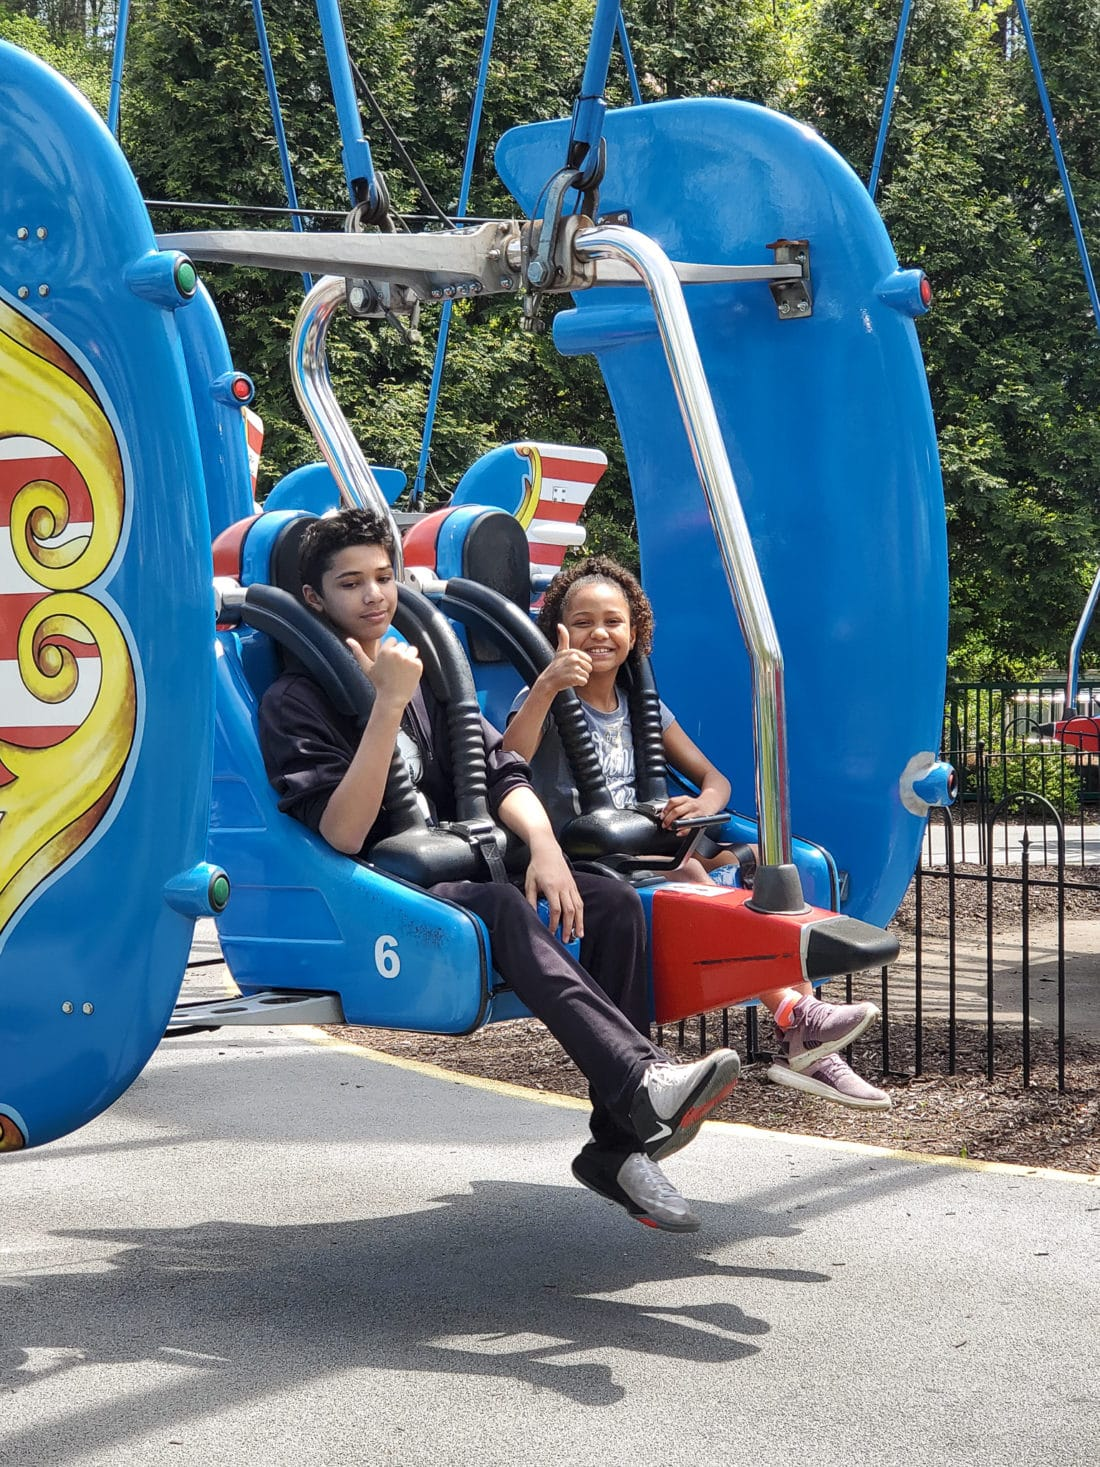 Dollywood Country Fair Ride. My family spent the day playing and eating at the Dollywood theme park, and we are happy to report we had a blast! Read all about our trip and learn why Dollwood is a must visit destination while you are in Pigeon Forge, TN.